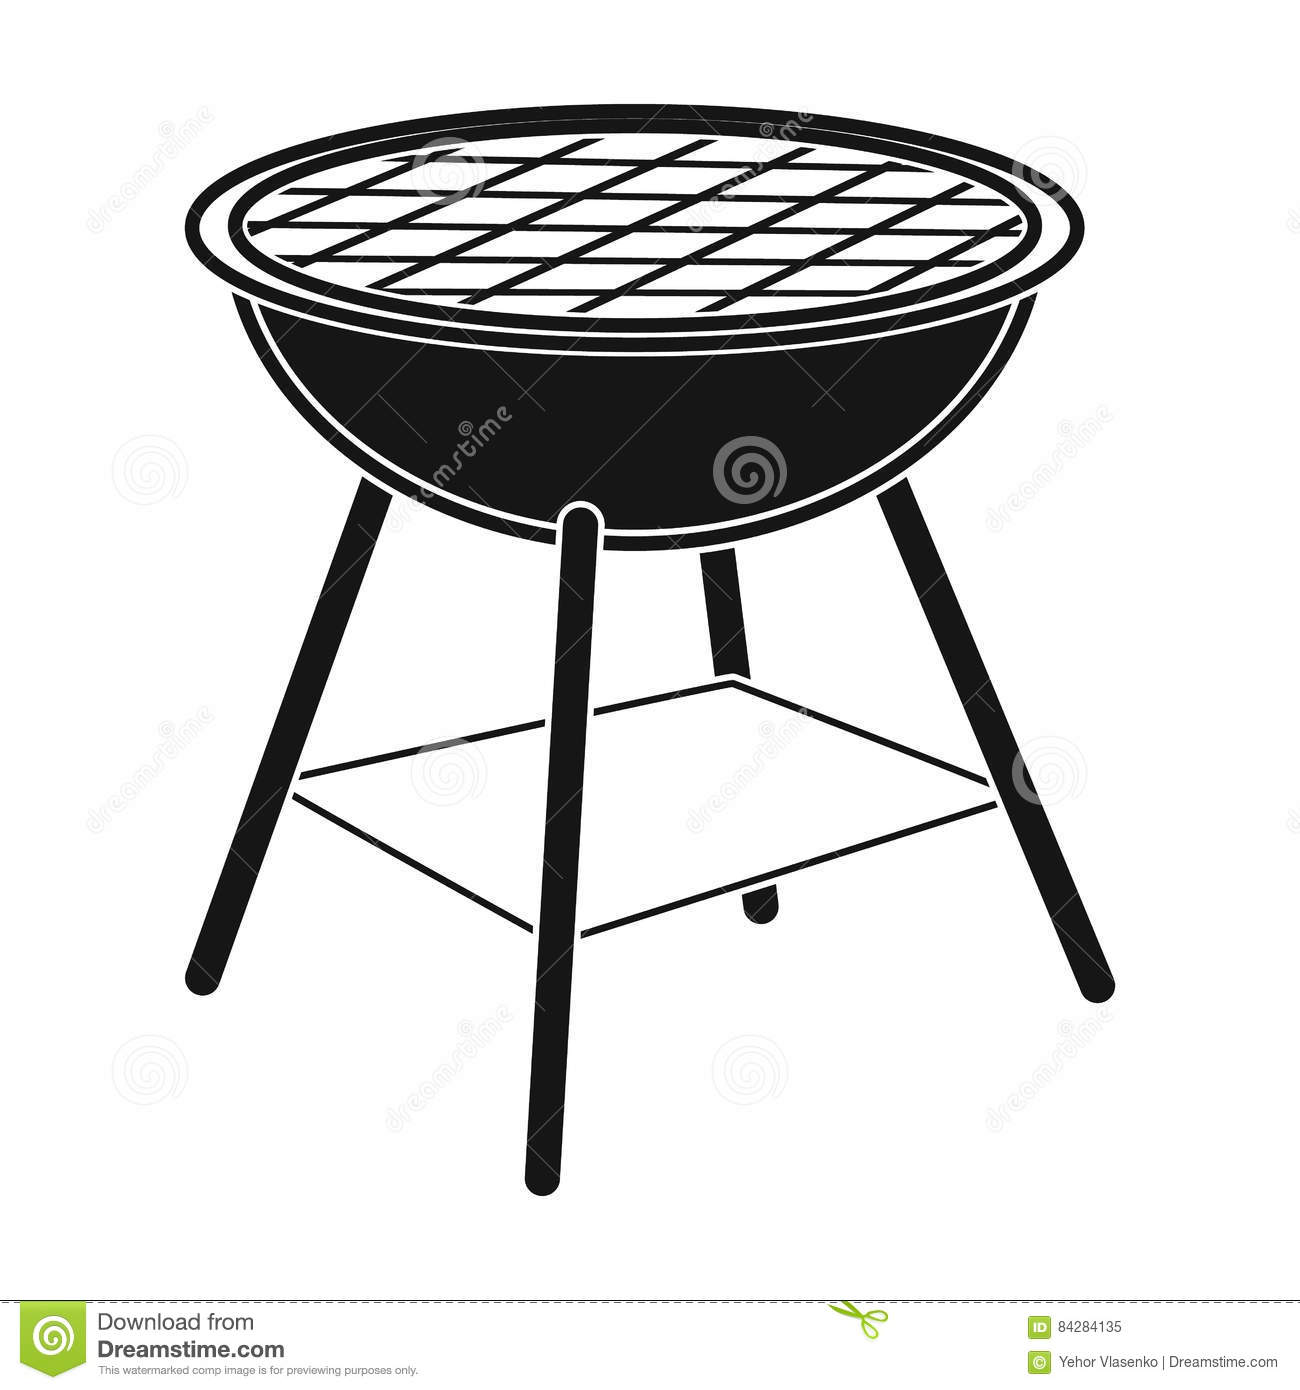 Barbecue grill icon in black style isolated on white background barbecue grill icon in black style isolated on white background picnic symbol stock vector illustration biocorpaavc